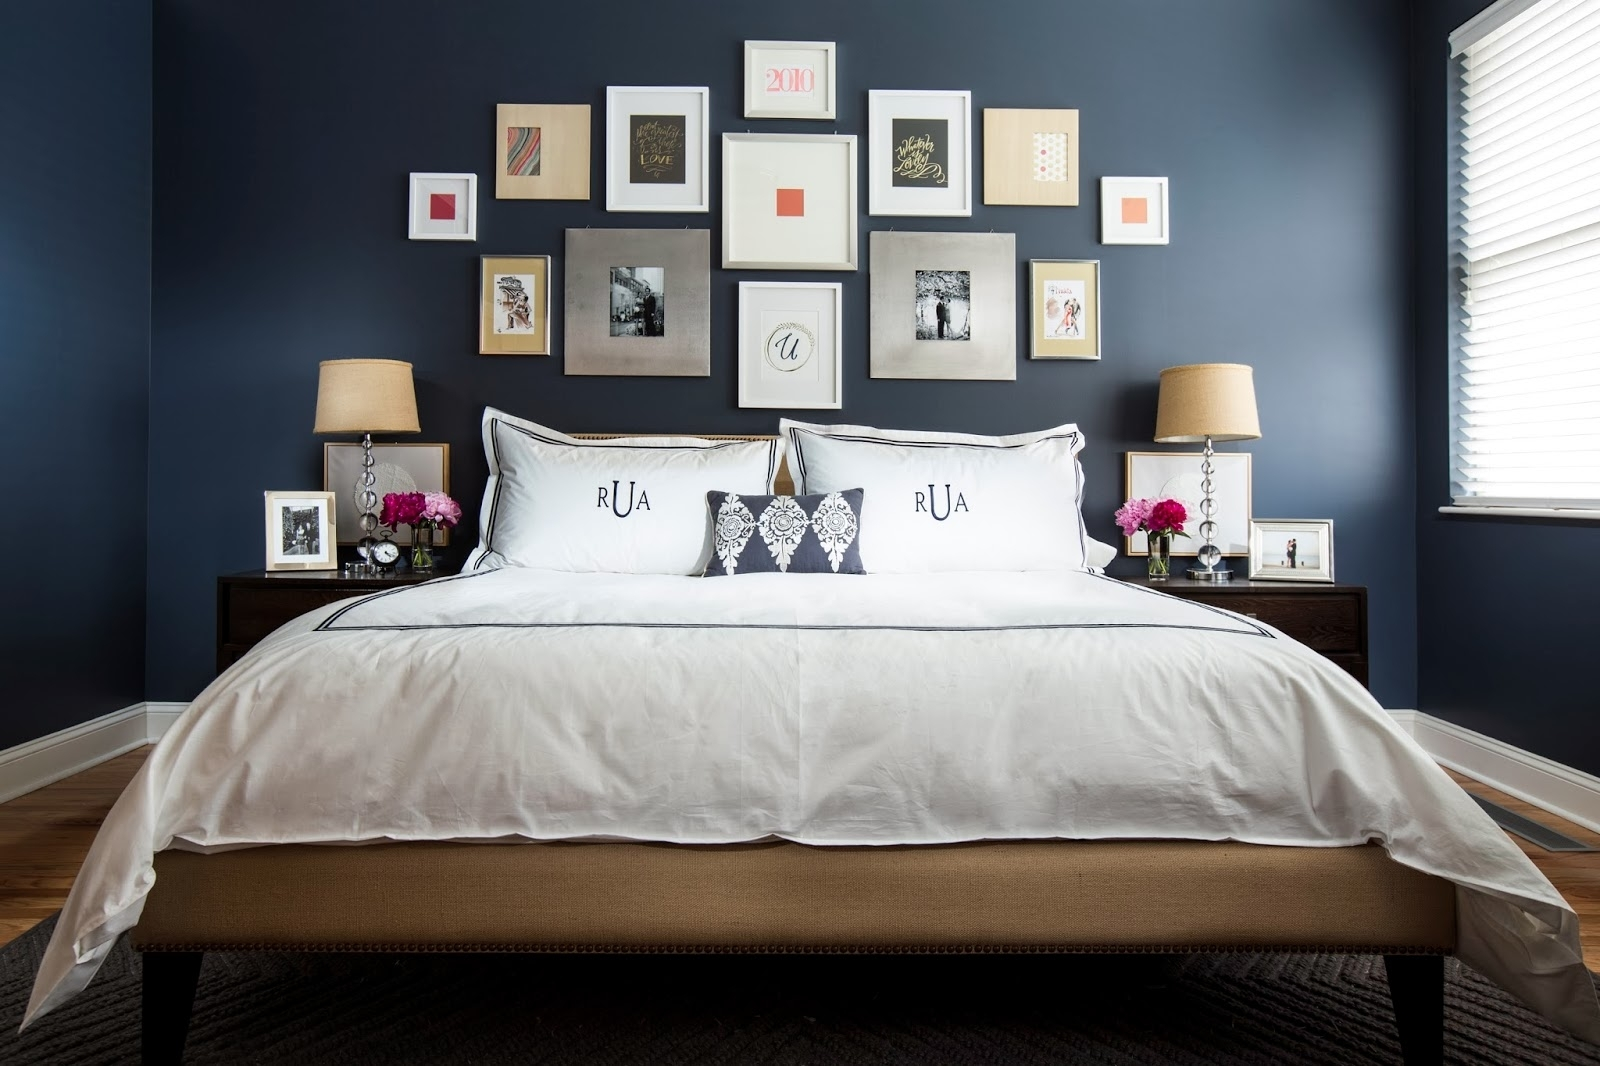 Full Of Framed Awesome Bedroom Design With Wall Art Over Bed Feat inside Best and Newest Fabric Wall Art Above Bed